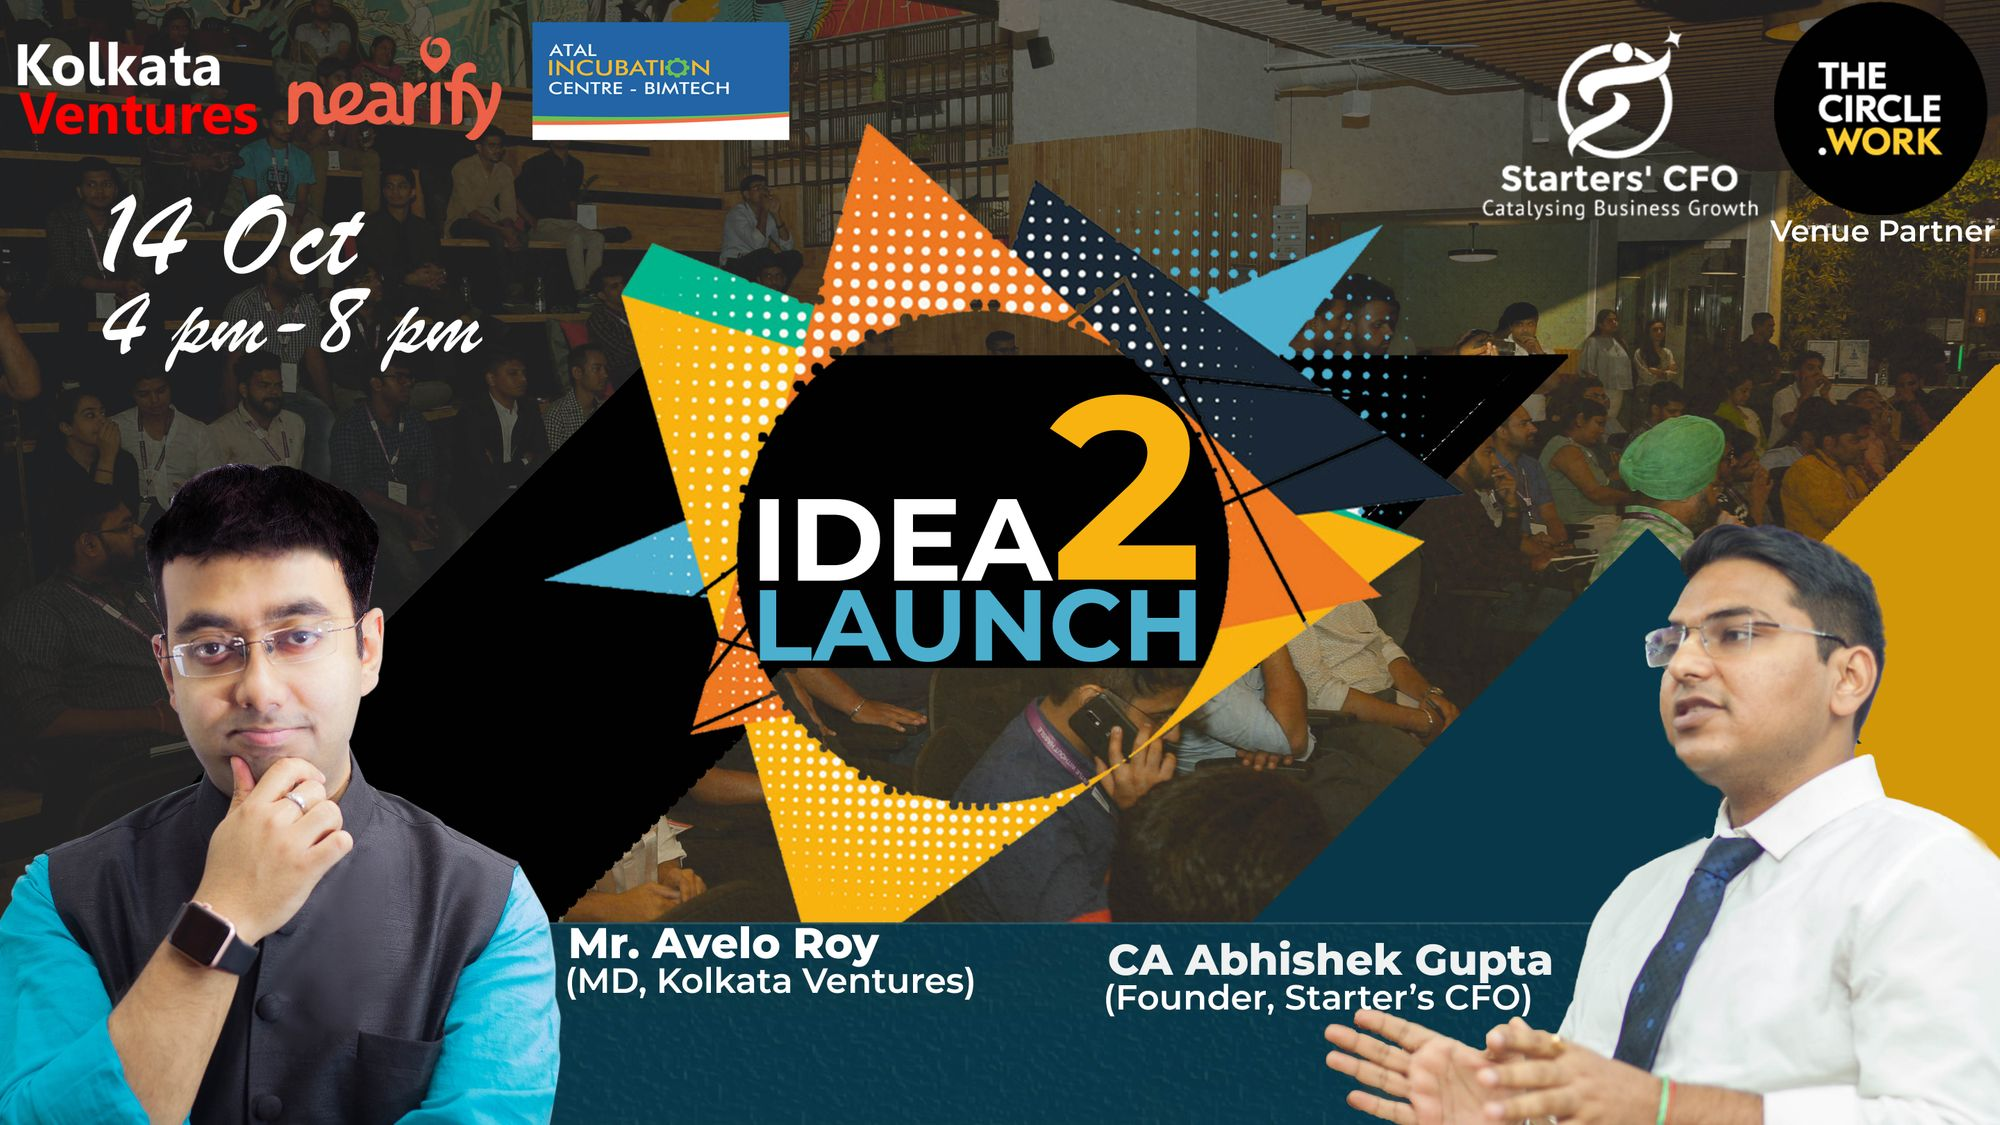 Learn how to launch using Lean Startup Methodology Idea2Launch